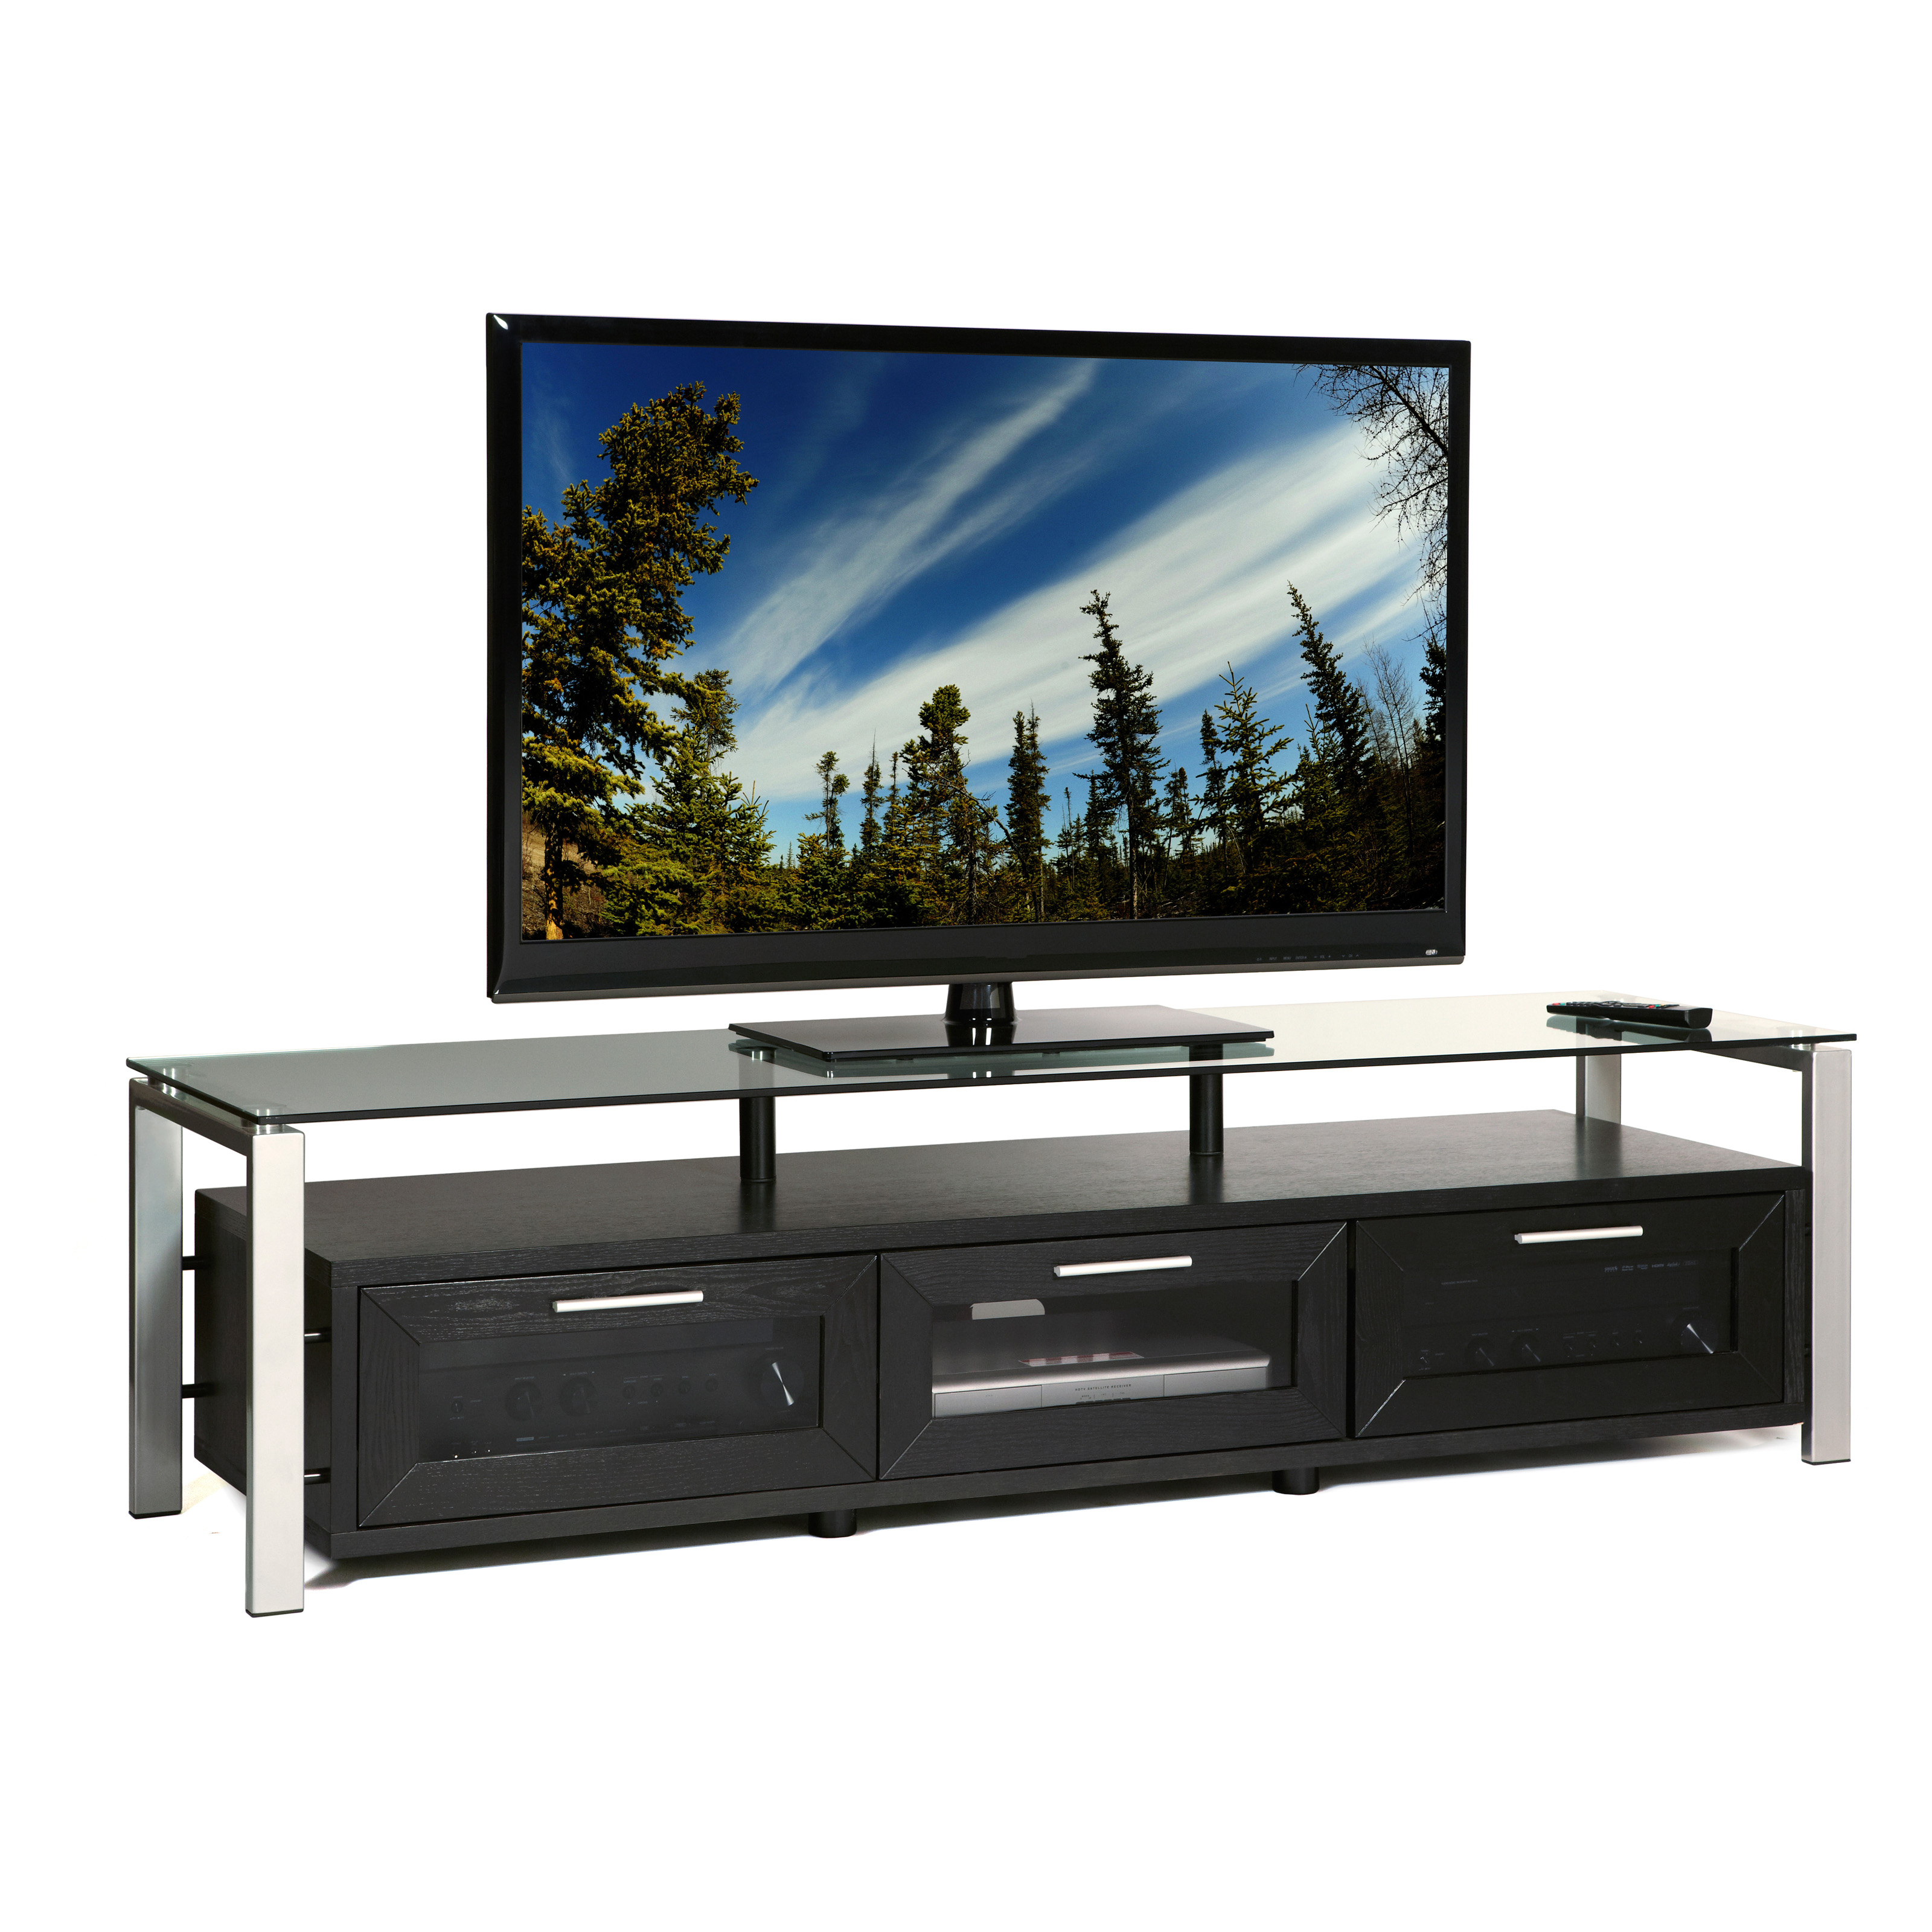 Plateau Decor 71 Inch TV Stand in Black Black and Silver